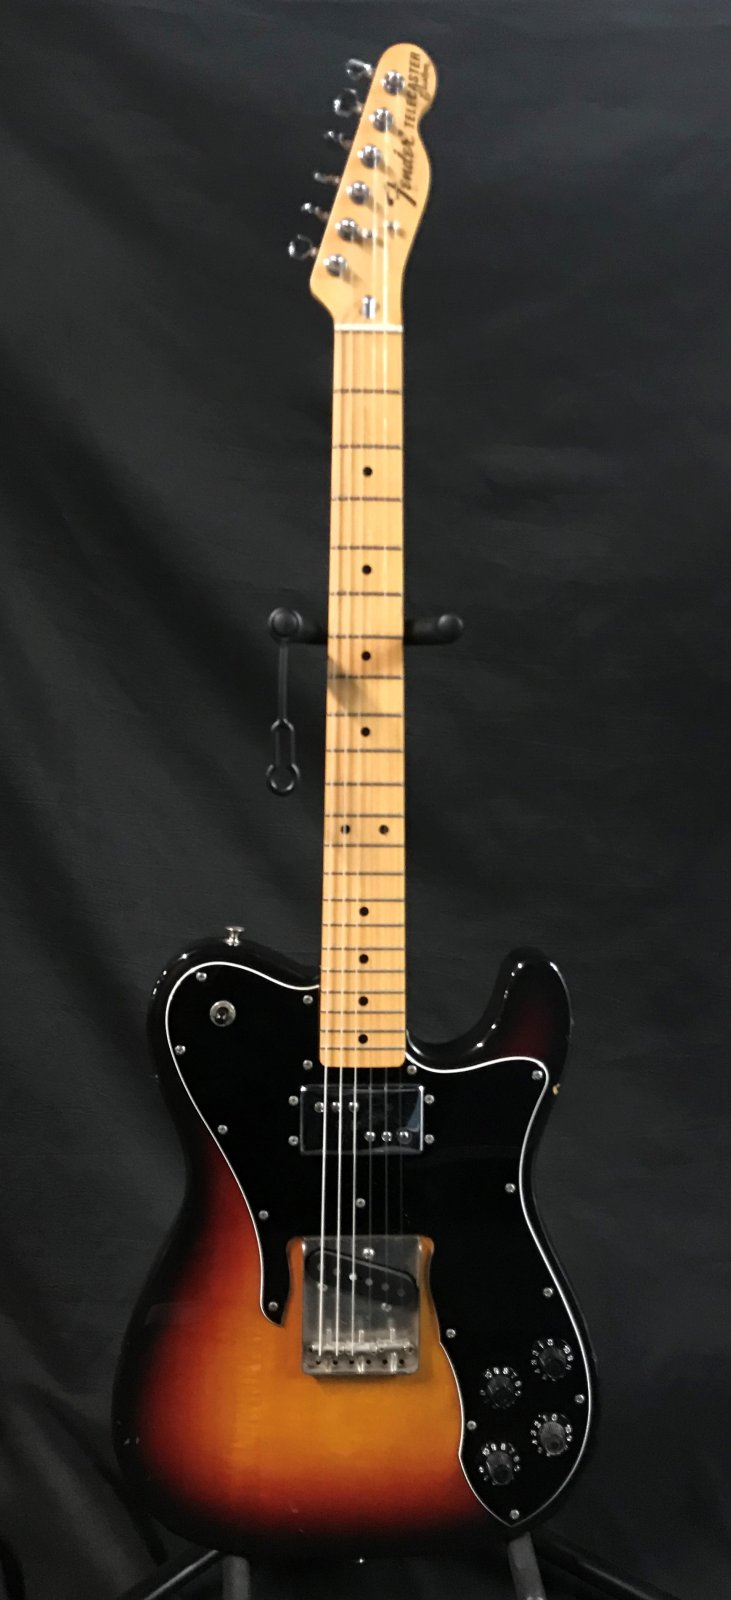 Used Fender Telecaster '72 Custom MIJ